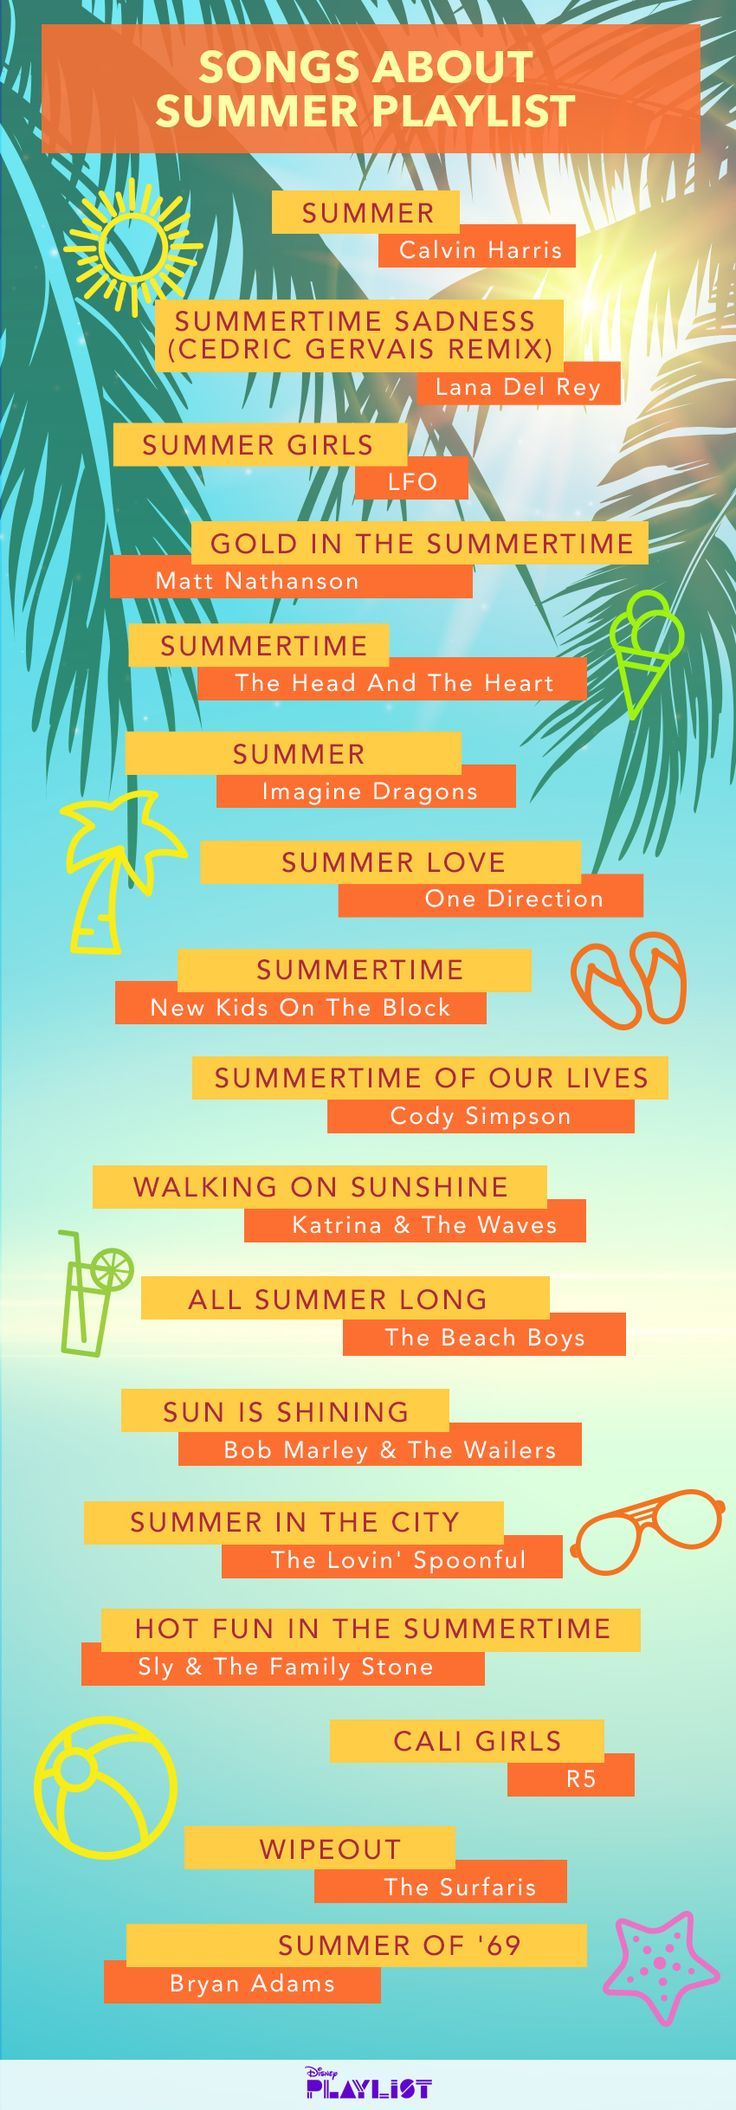 Relive Beach Days Gone By With Our Songs About Summer Playlist